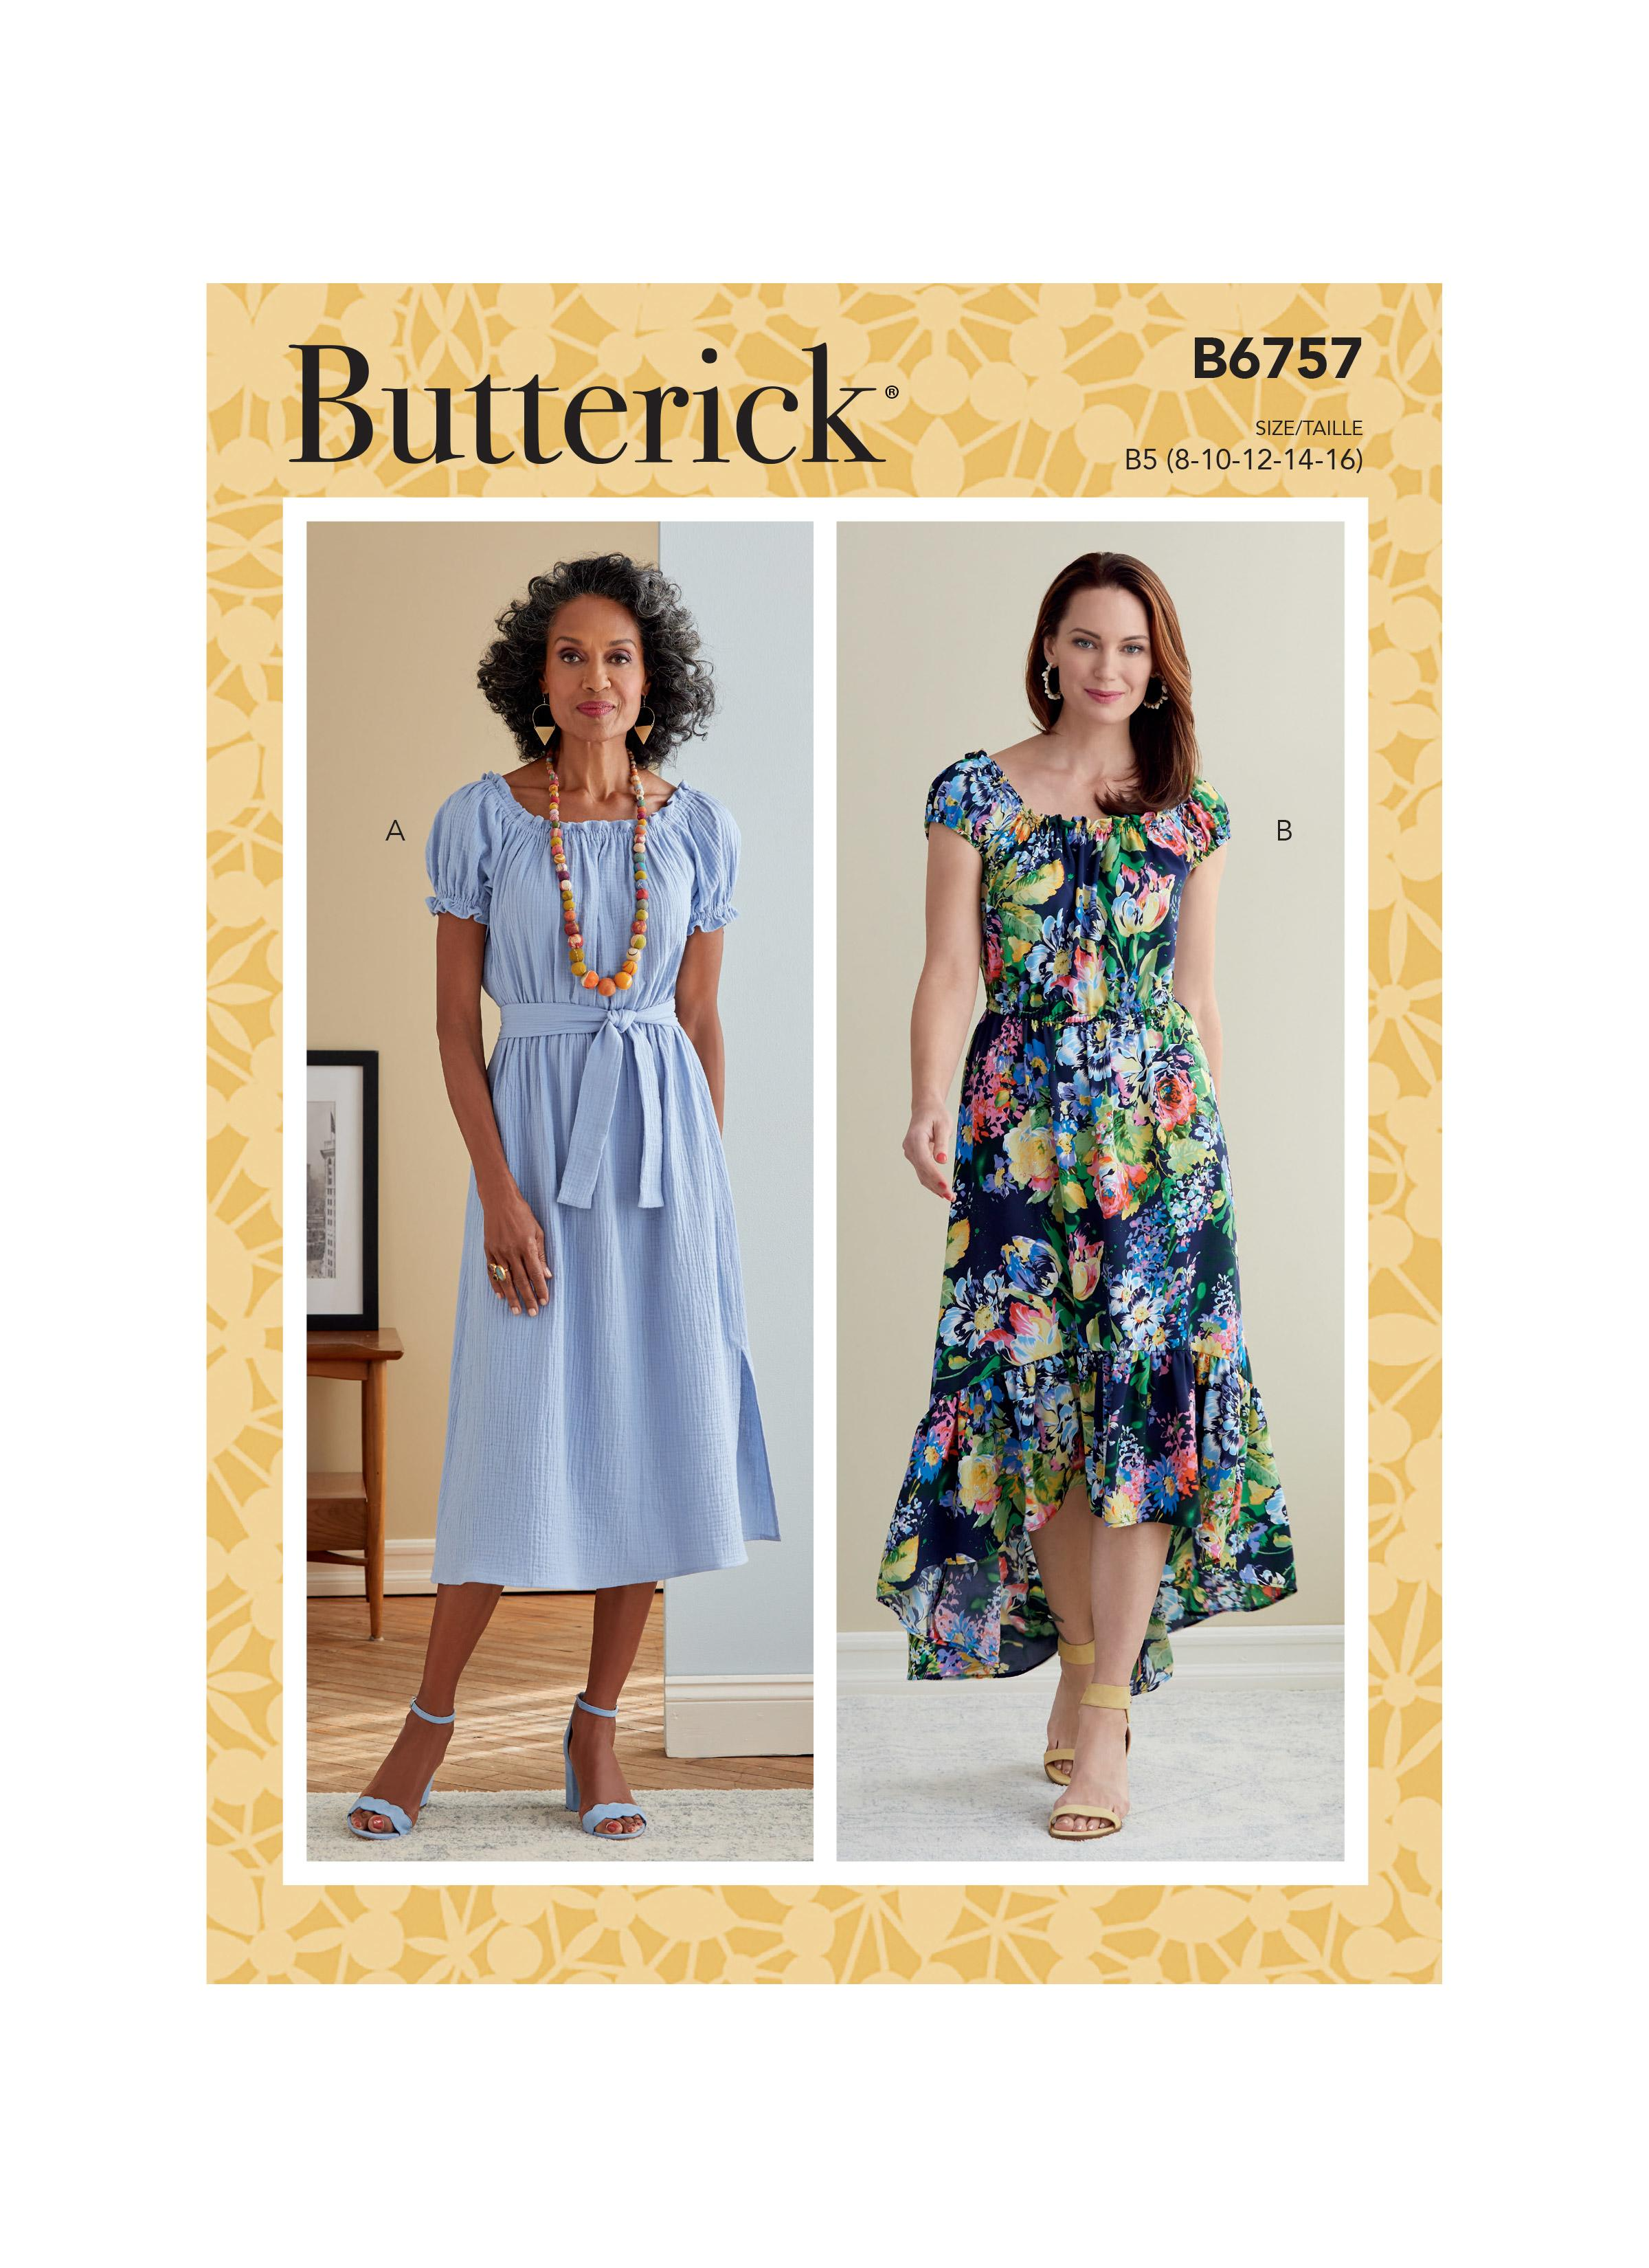 Butterick B6757 Misses' Dress